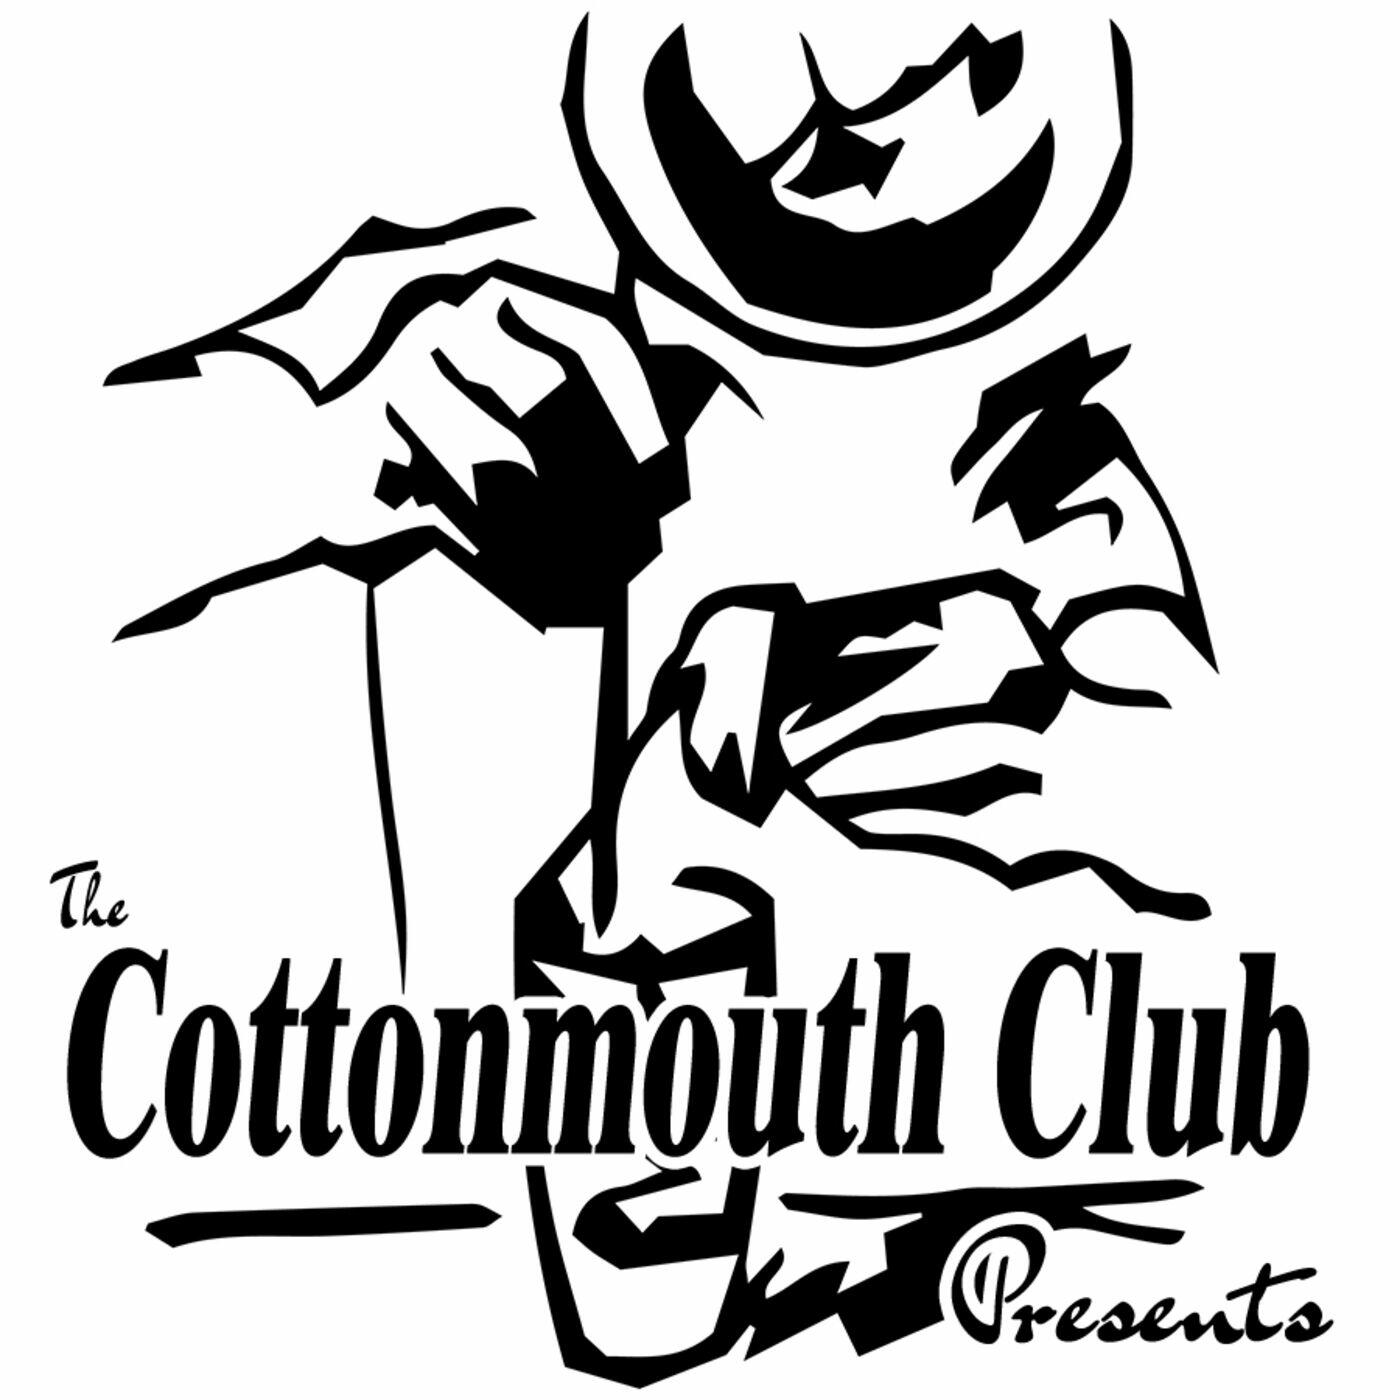 The Cottonmouth Club Presents: Bars, Bar Culture, Cocktails & Spirits